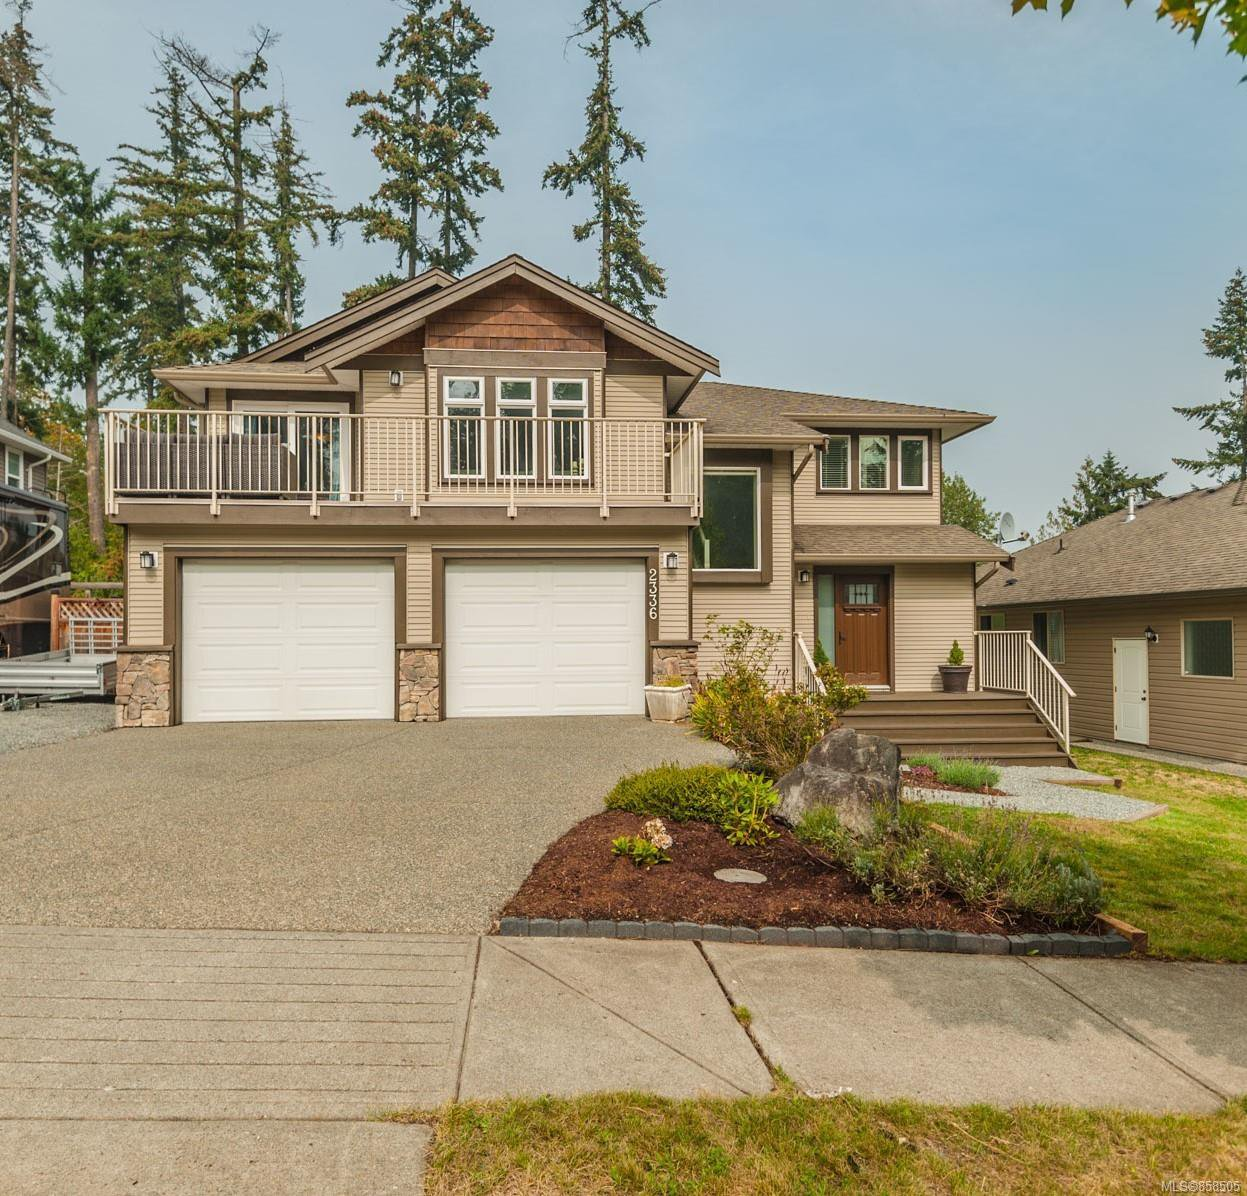 Main Photo: 2336 Dodds Rd in : Na Chase River House for sale (Nanaimo)  : MLS®# 858505